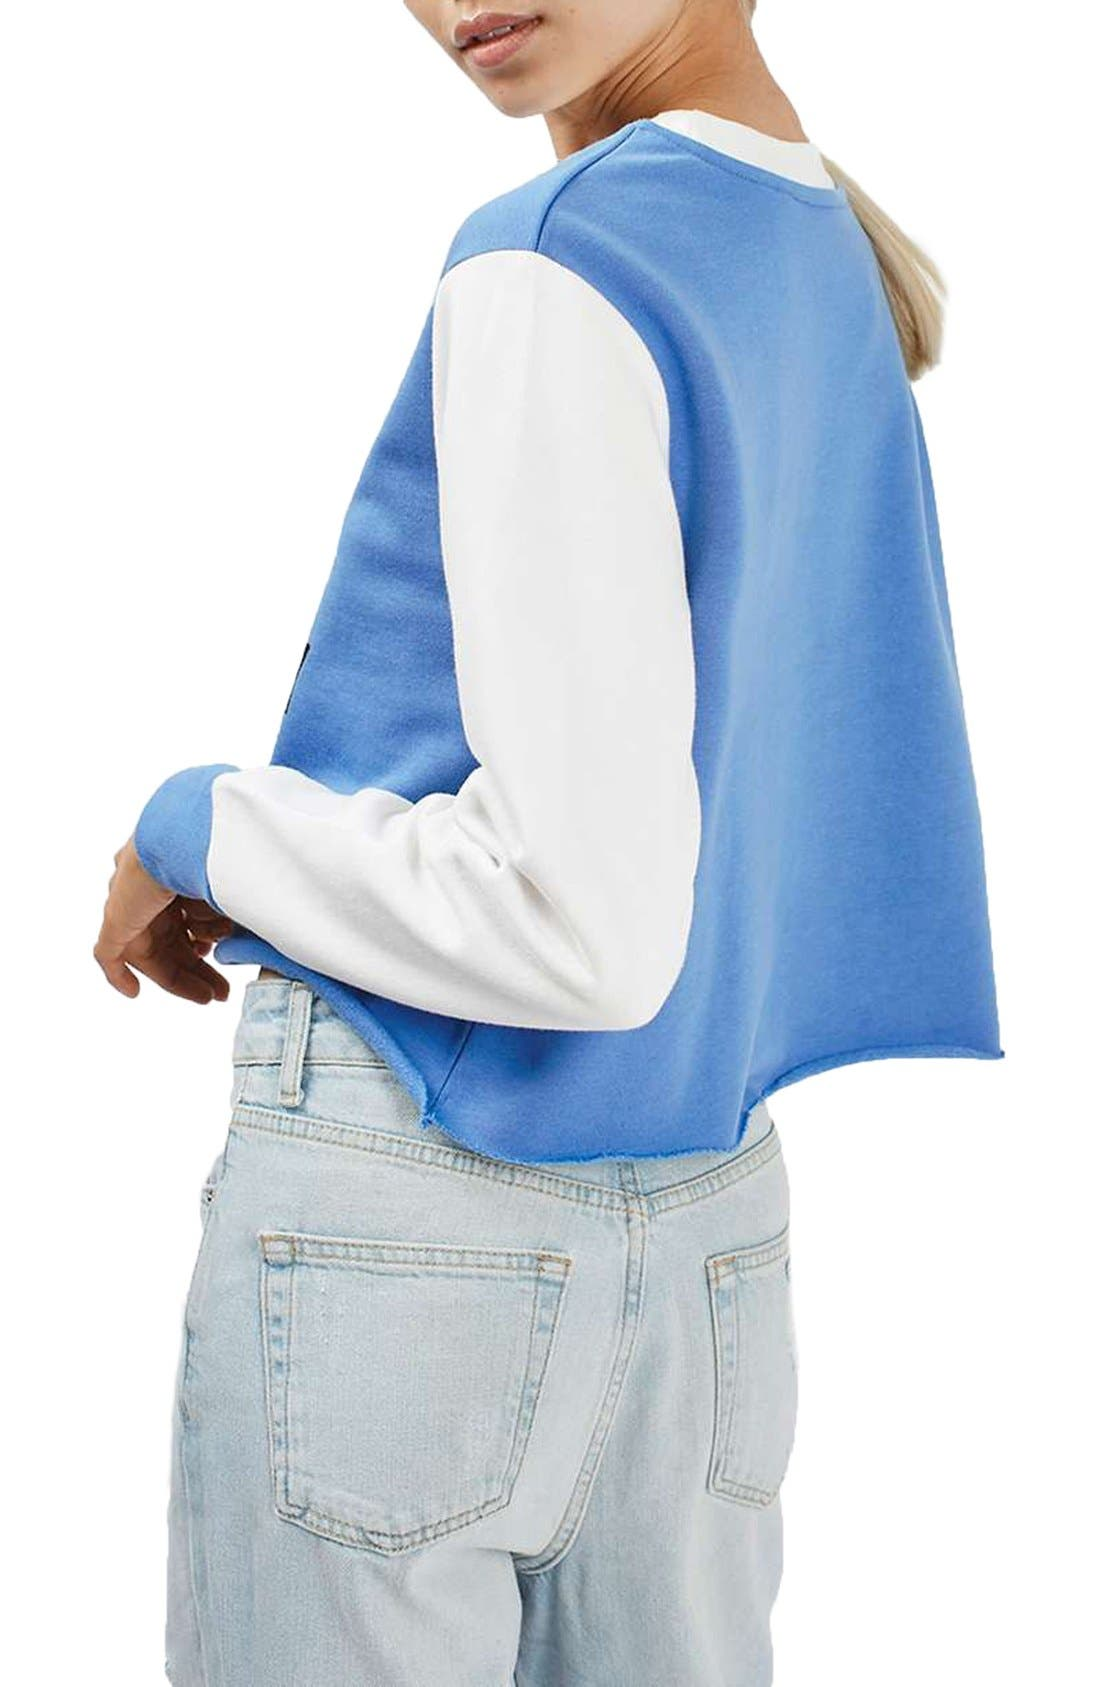 by Tee & Cake 'Hangry' Graphic Crop Colorblock Sweatshirt,                             Alternate thumbnail 3, color,                             Blue